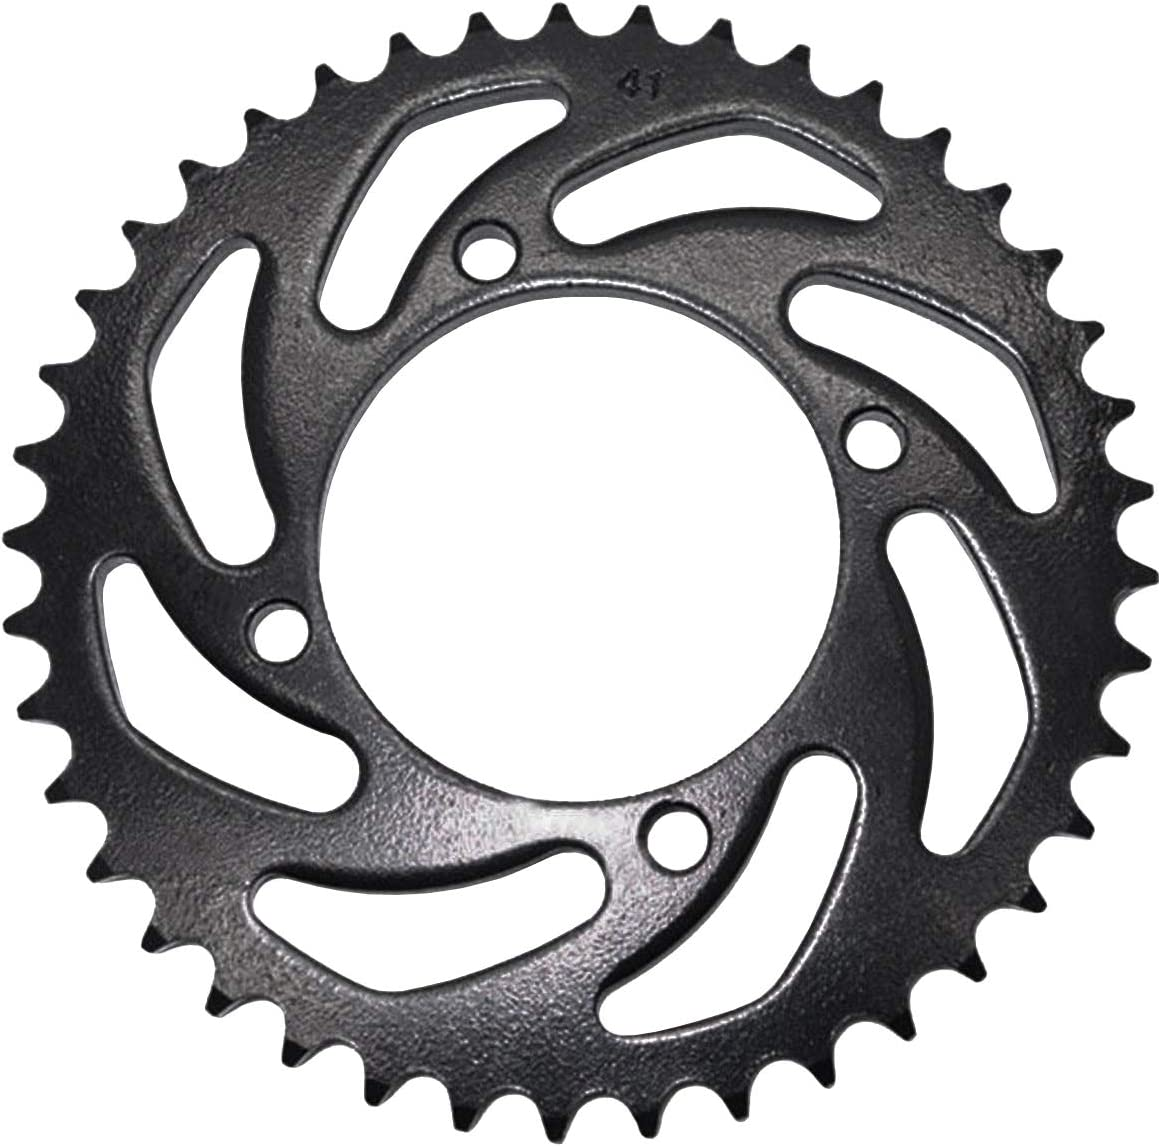 TDPRO 428 108 Link Drive Chain and 41 Teeth Sprocket Cog for Motorcycle ATV Pit Dirt Bike